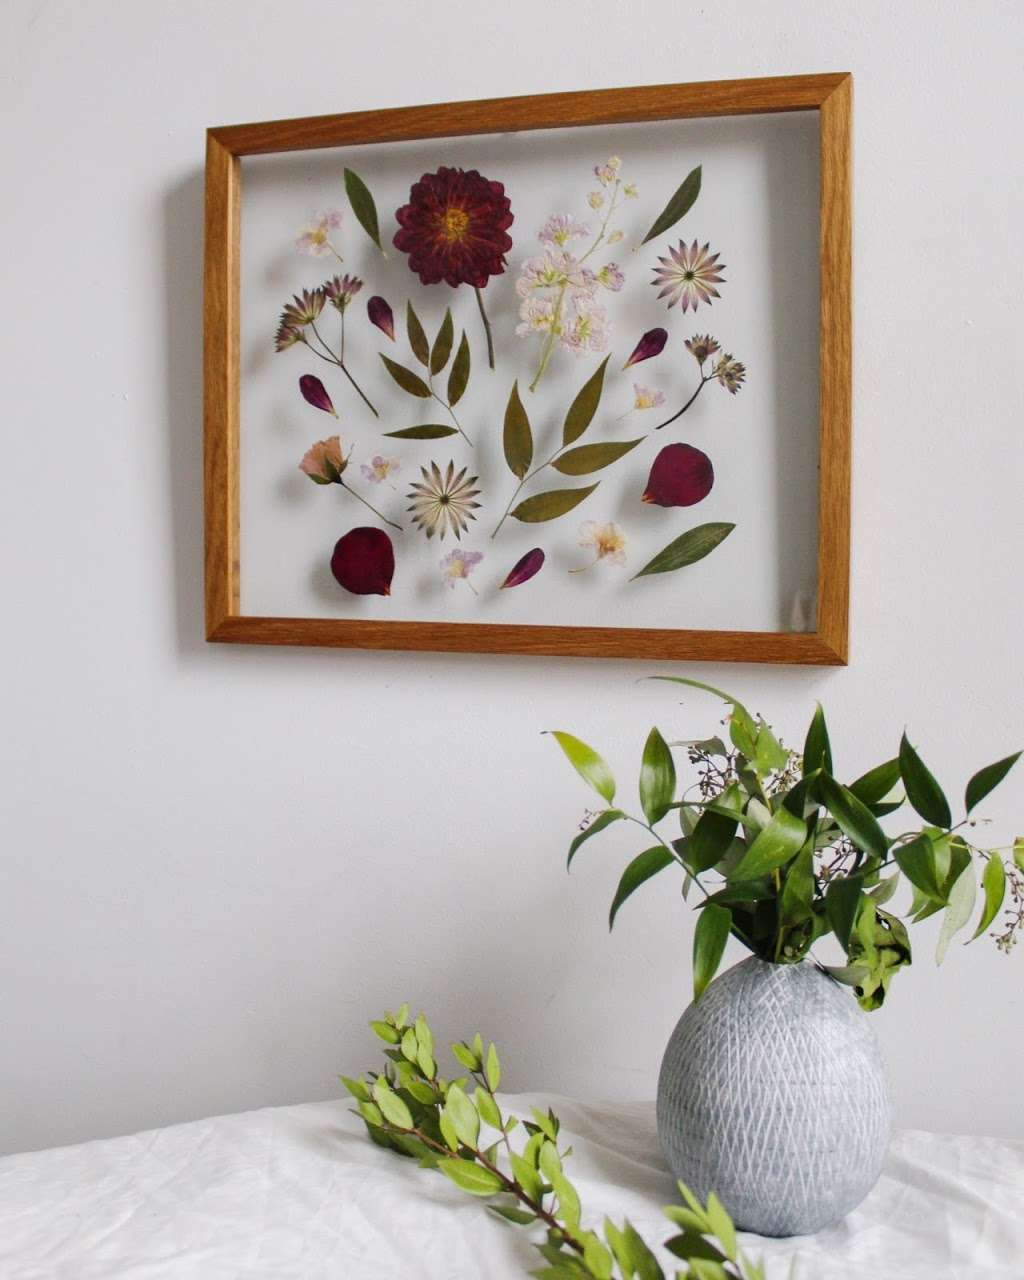 Framed Florals - florist  | Photo 1 of 10 | Address: 67 West St suite 325, Brooklyn, NY 11222, USA | Phone: (914) 719-7931